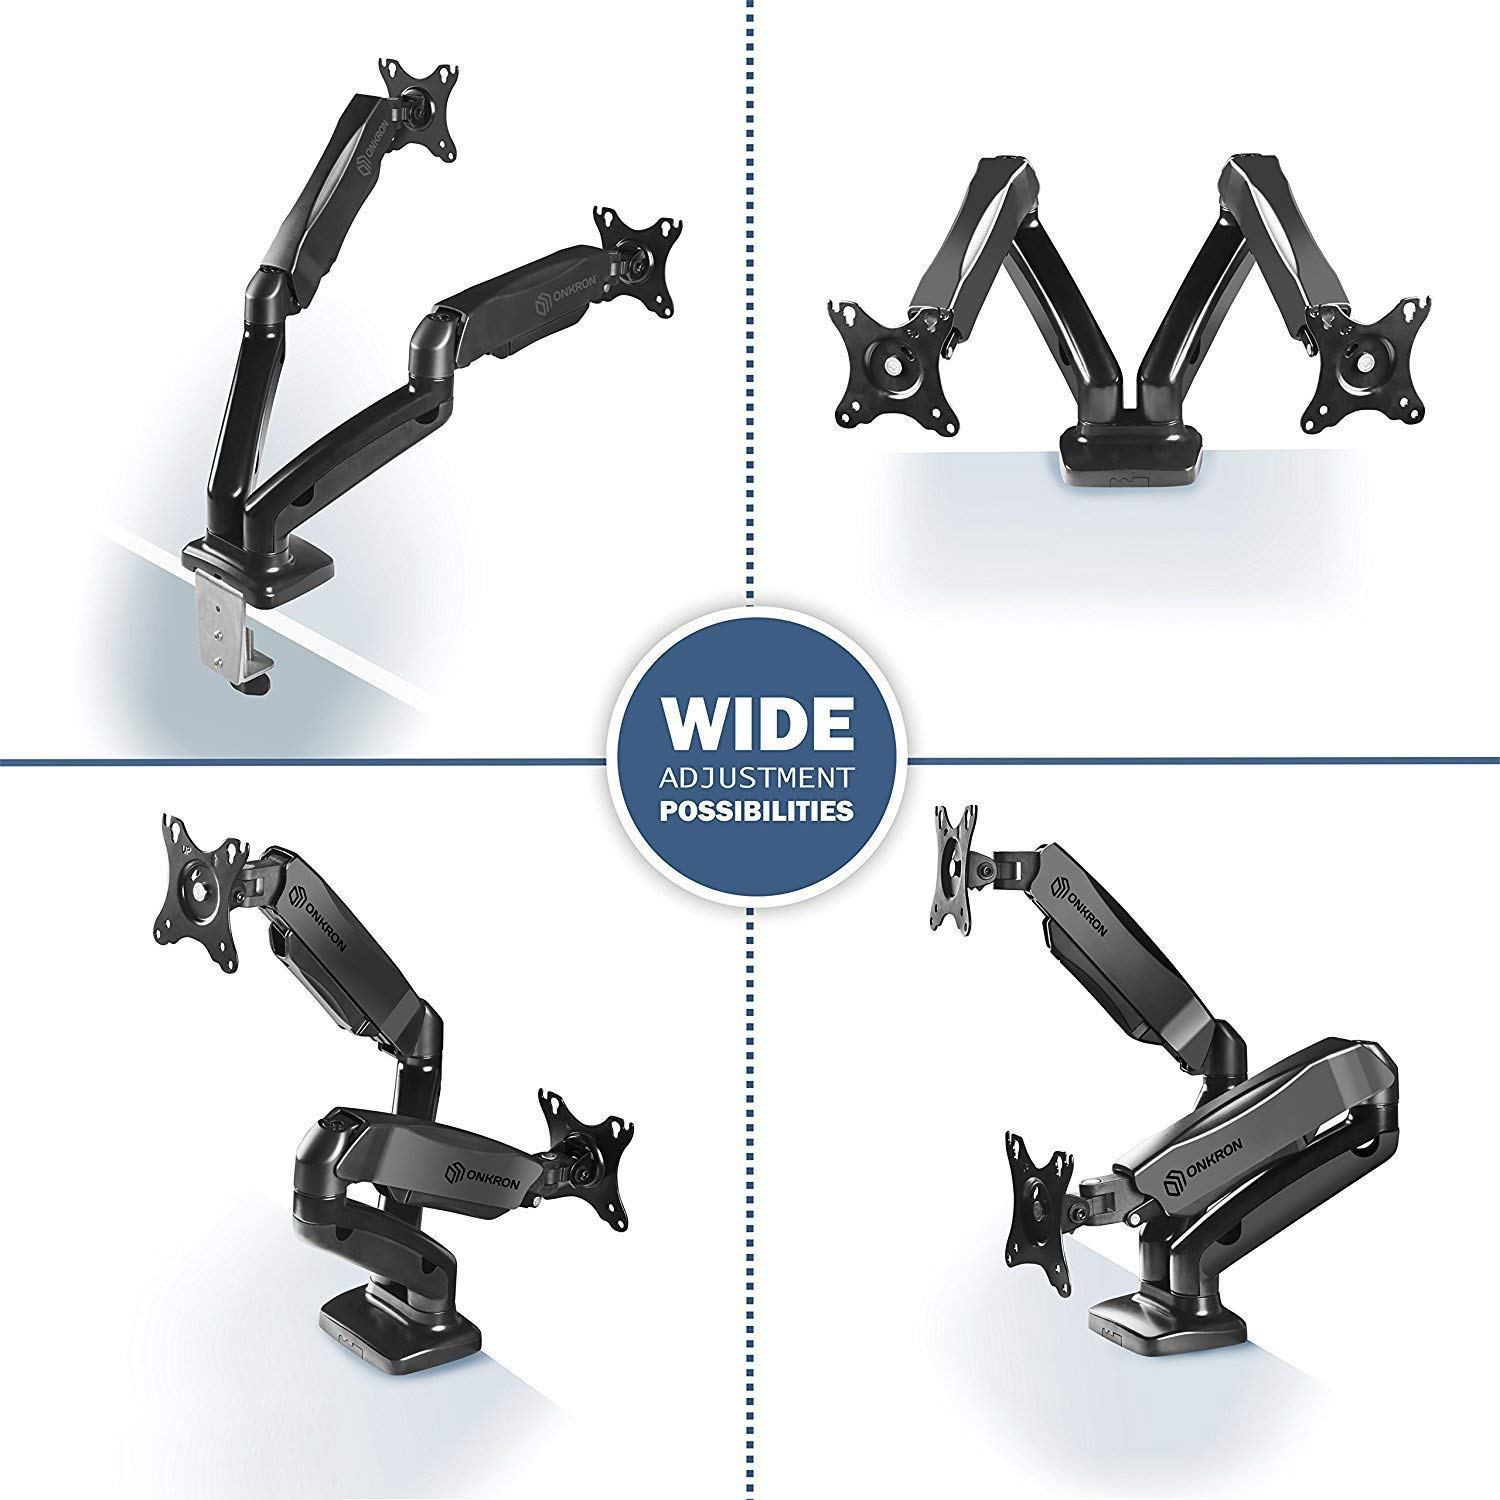 ONKRON Dual Monitor Desk Mount for 13 to 27-Inch LCD LED Computer TV Screens up to 14.3 lbs G160 by ONKRON (Image #2)